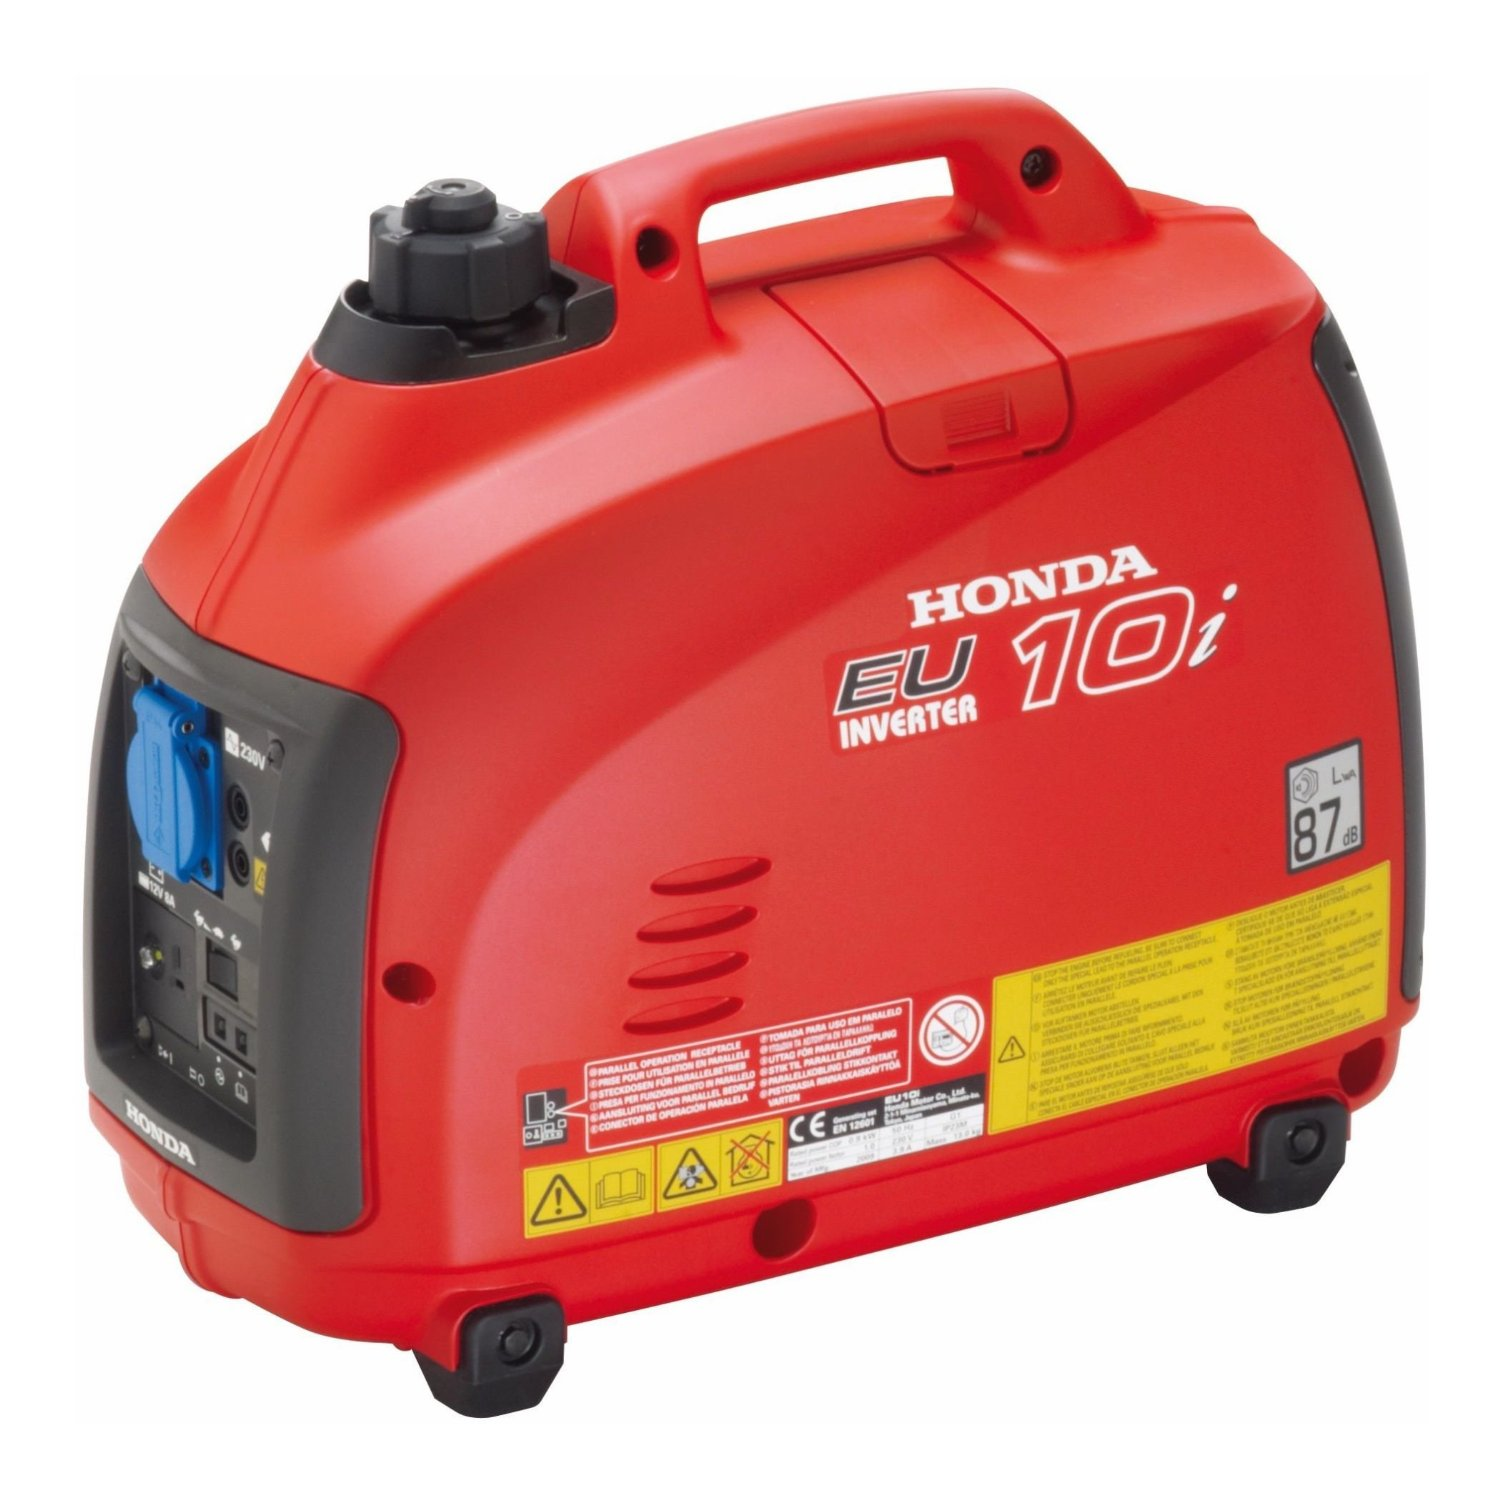 Honda eu 10i Handy Inverter